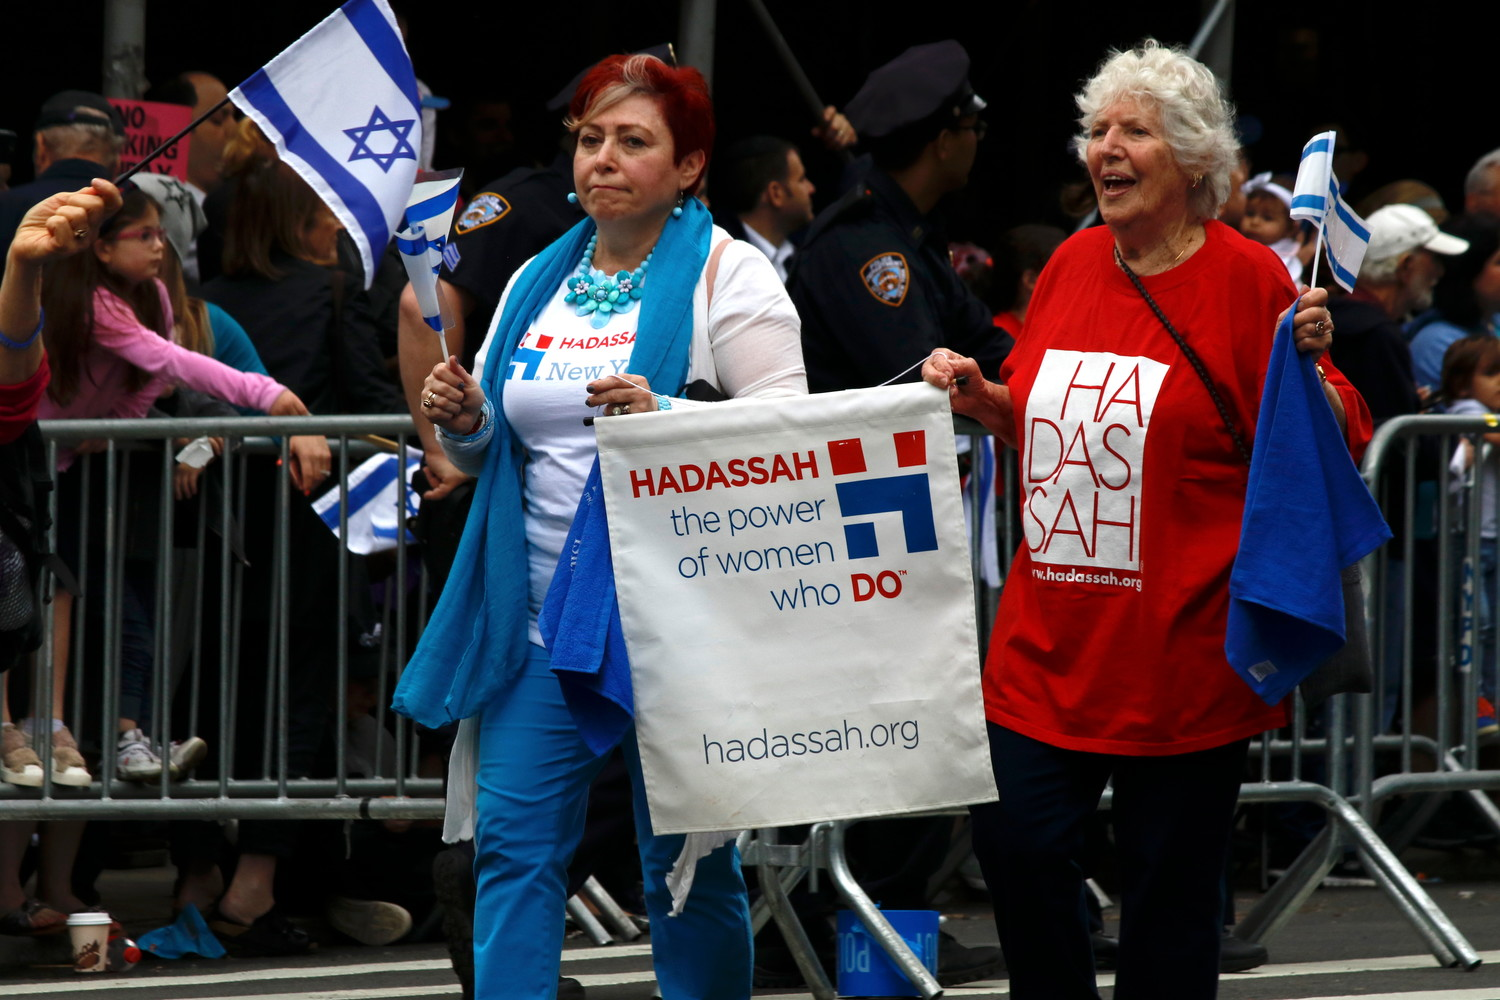 Hadassah The Women's Zionism Organization of America was founded over a century ago, before there was a state and before women could vote.